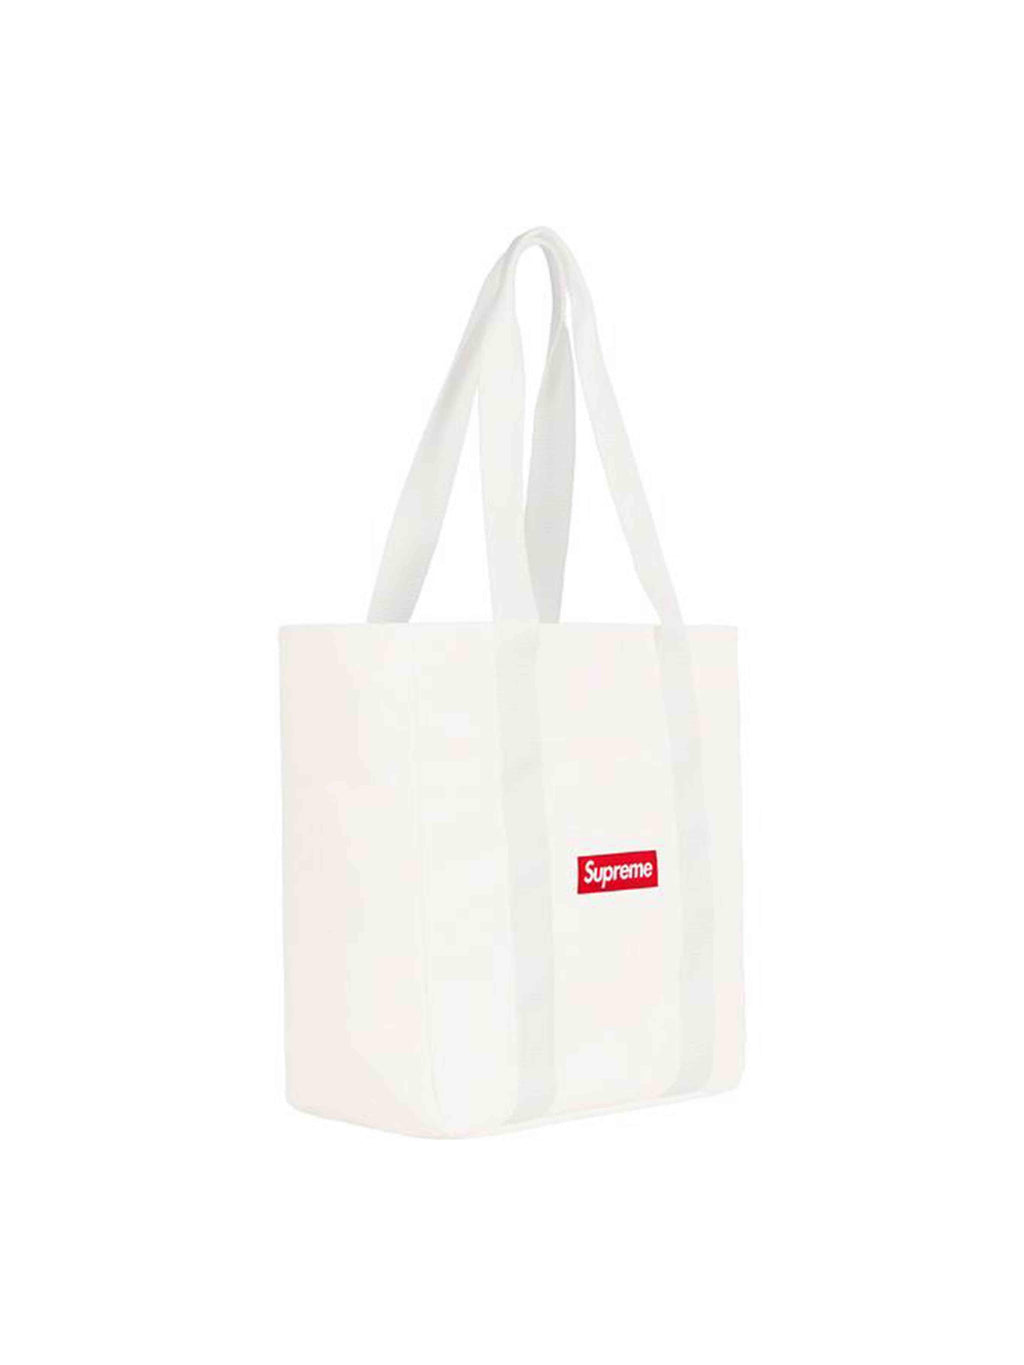 Supreme Canvas Tote White [FW20] - PRIOR